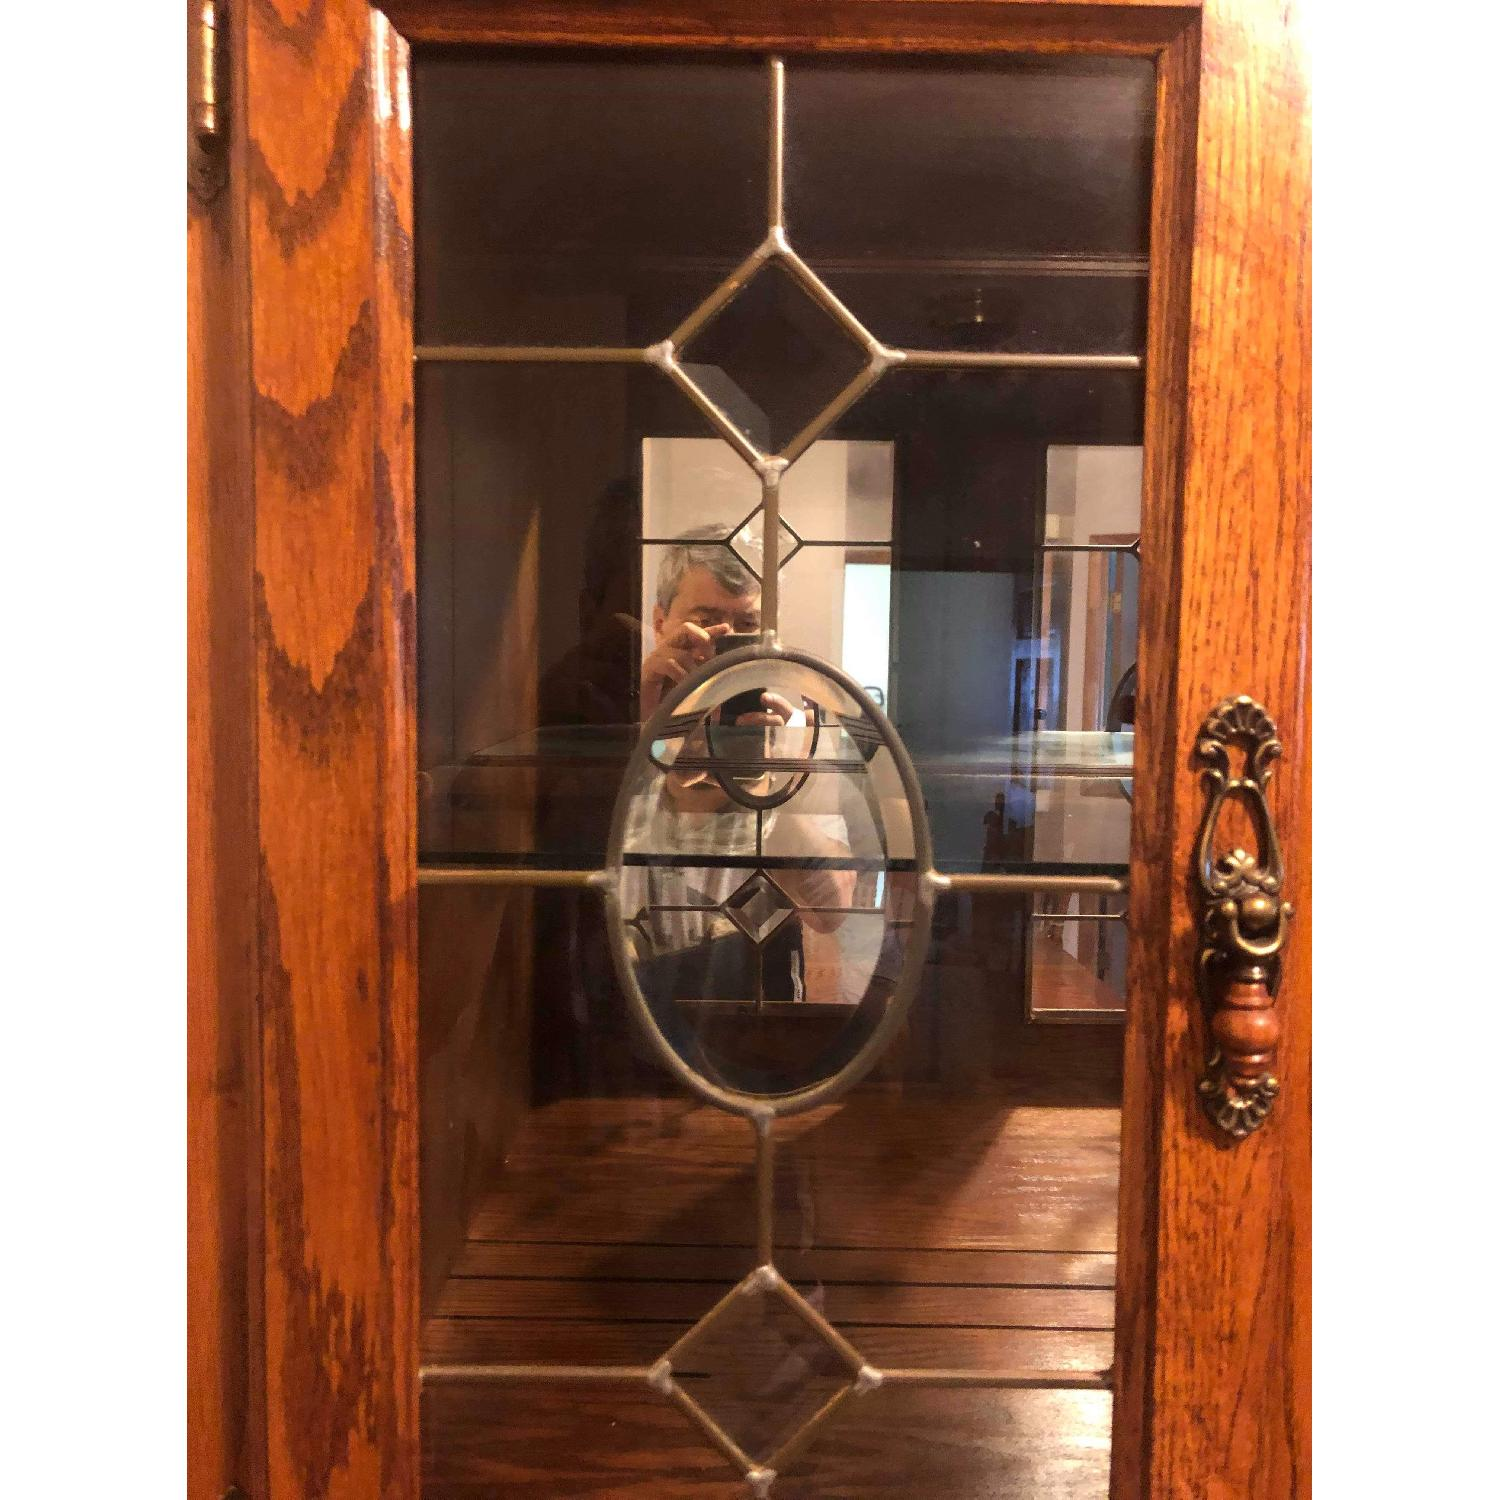 Solid Wood Early American Style Hutch w/ Lights - image-11